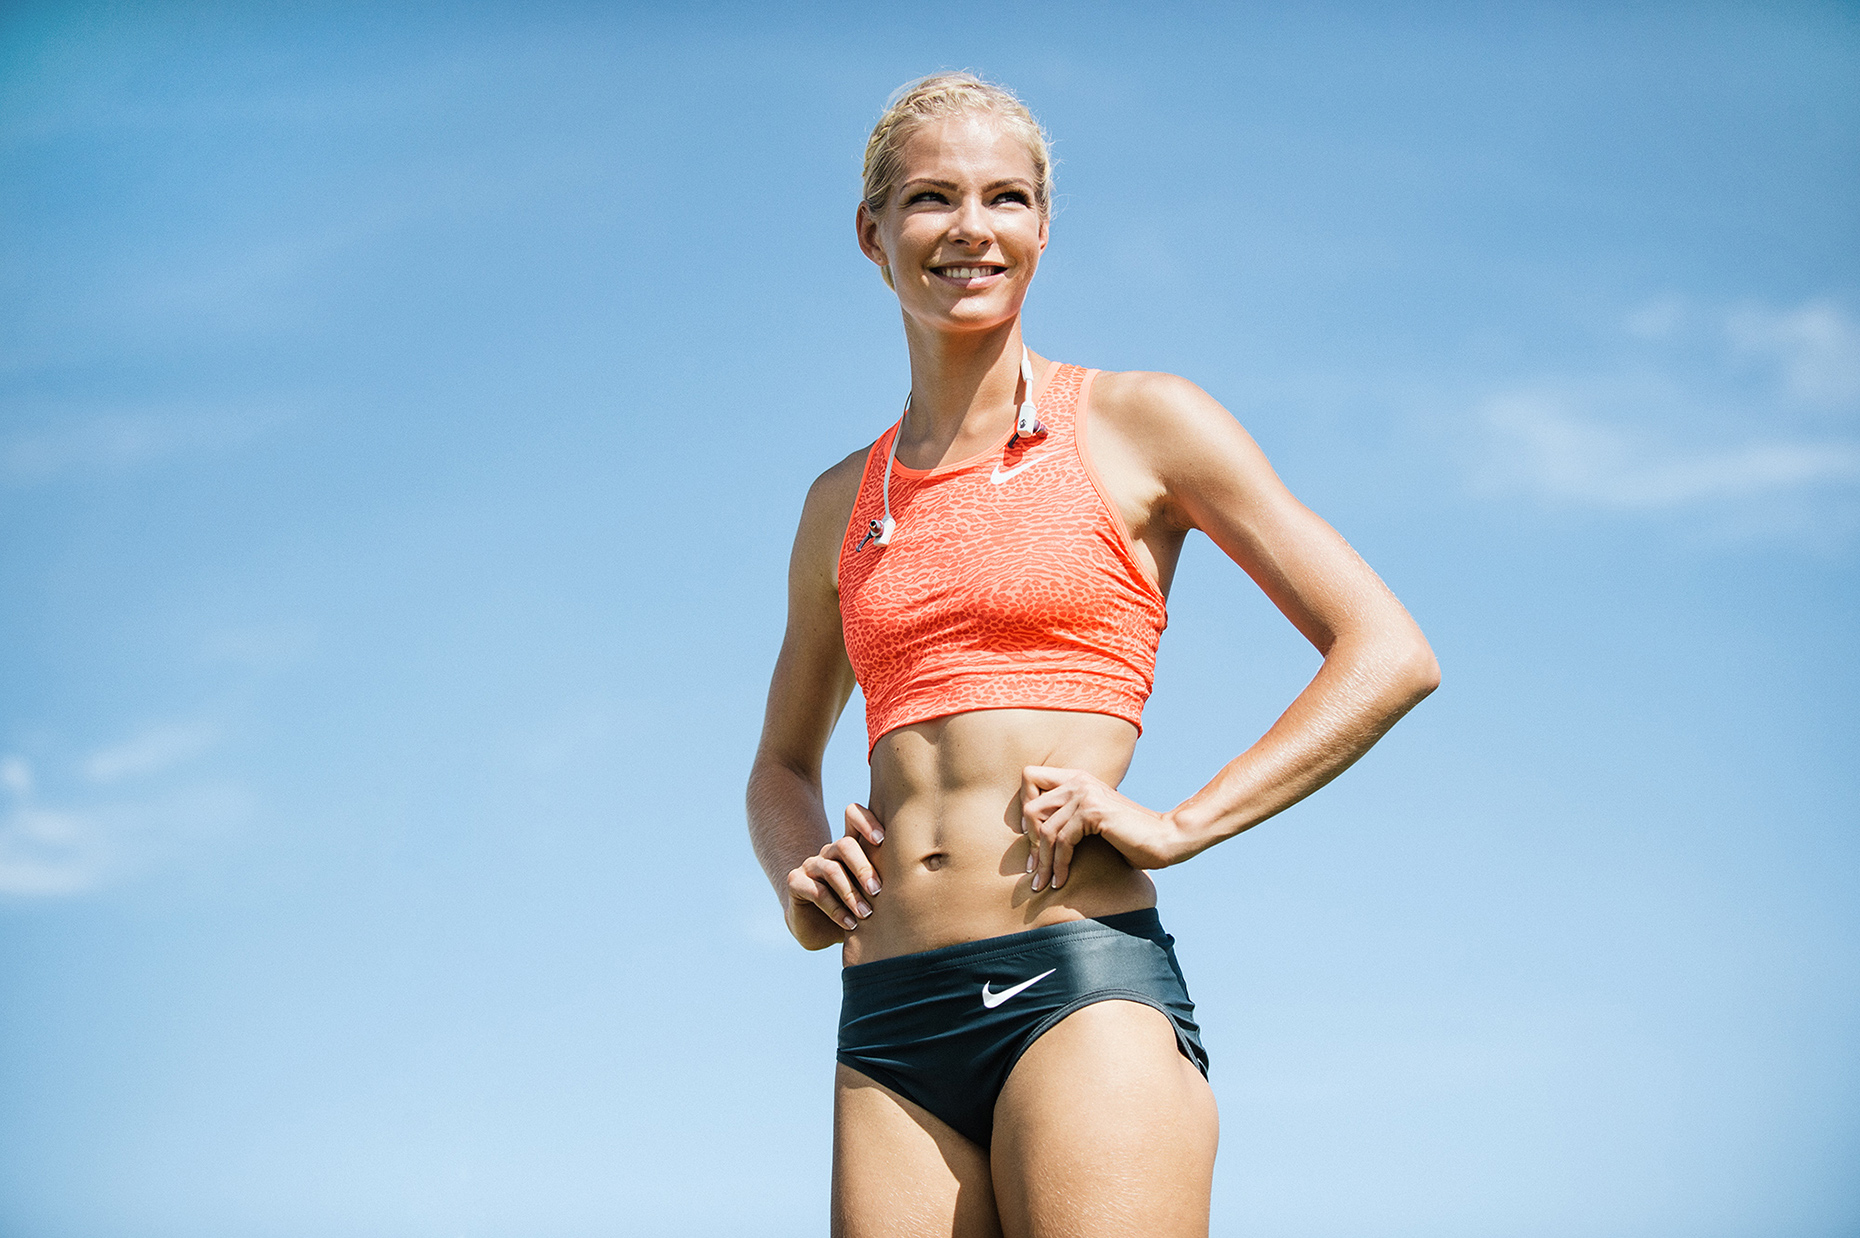 skullcandy_06252015-darya-klishina-2185